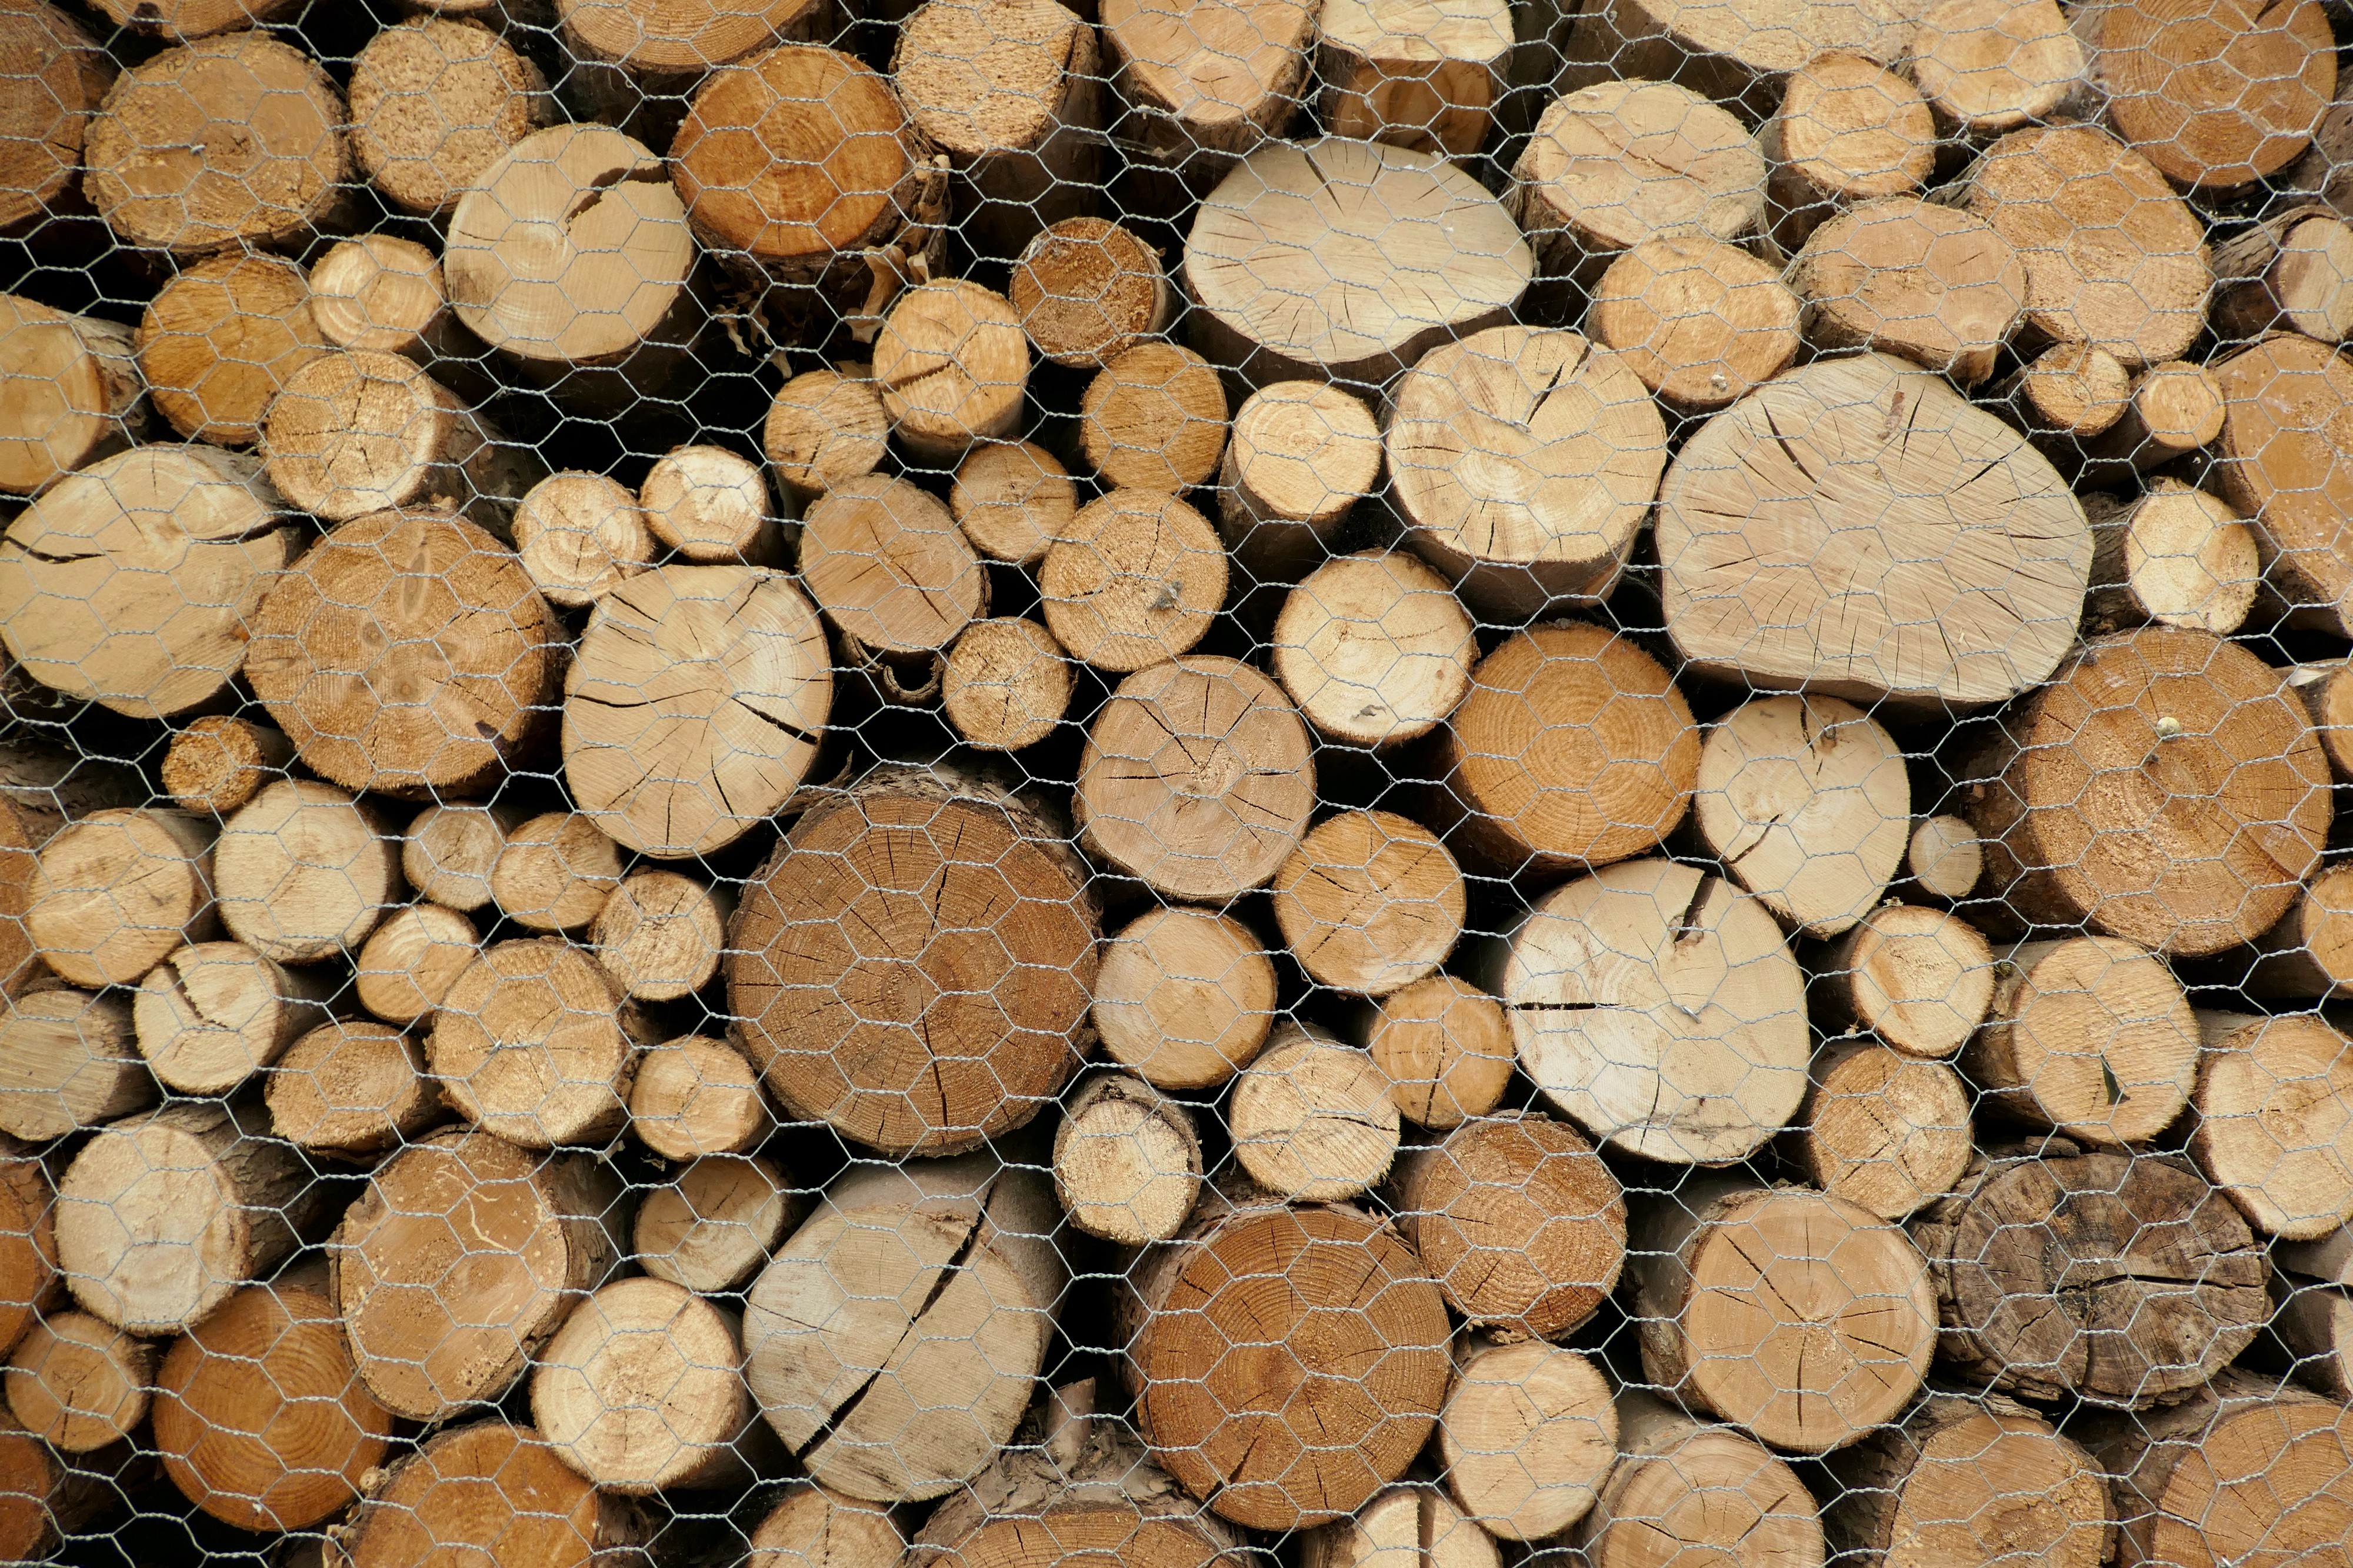 Photo of the end of a pile of cut trees in various round shapes and sizes behind chicken wire.